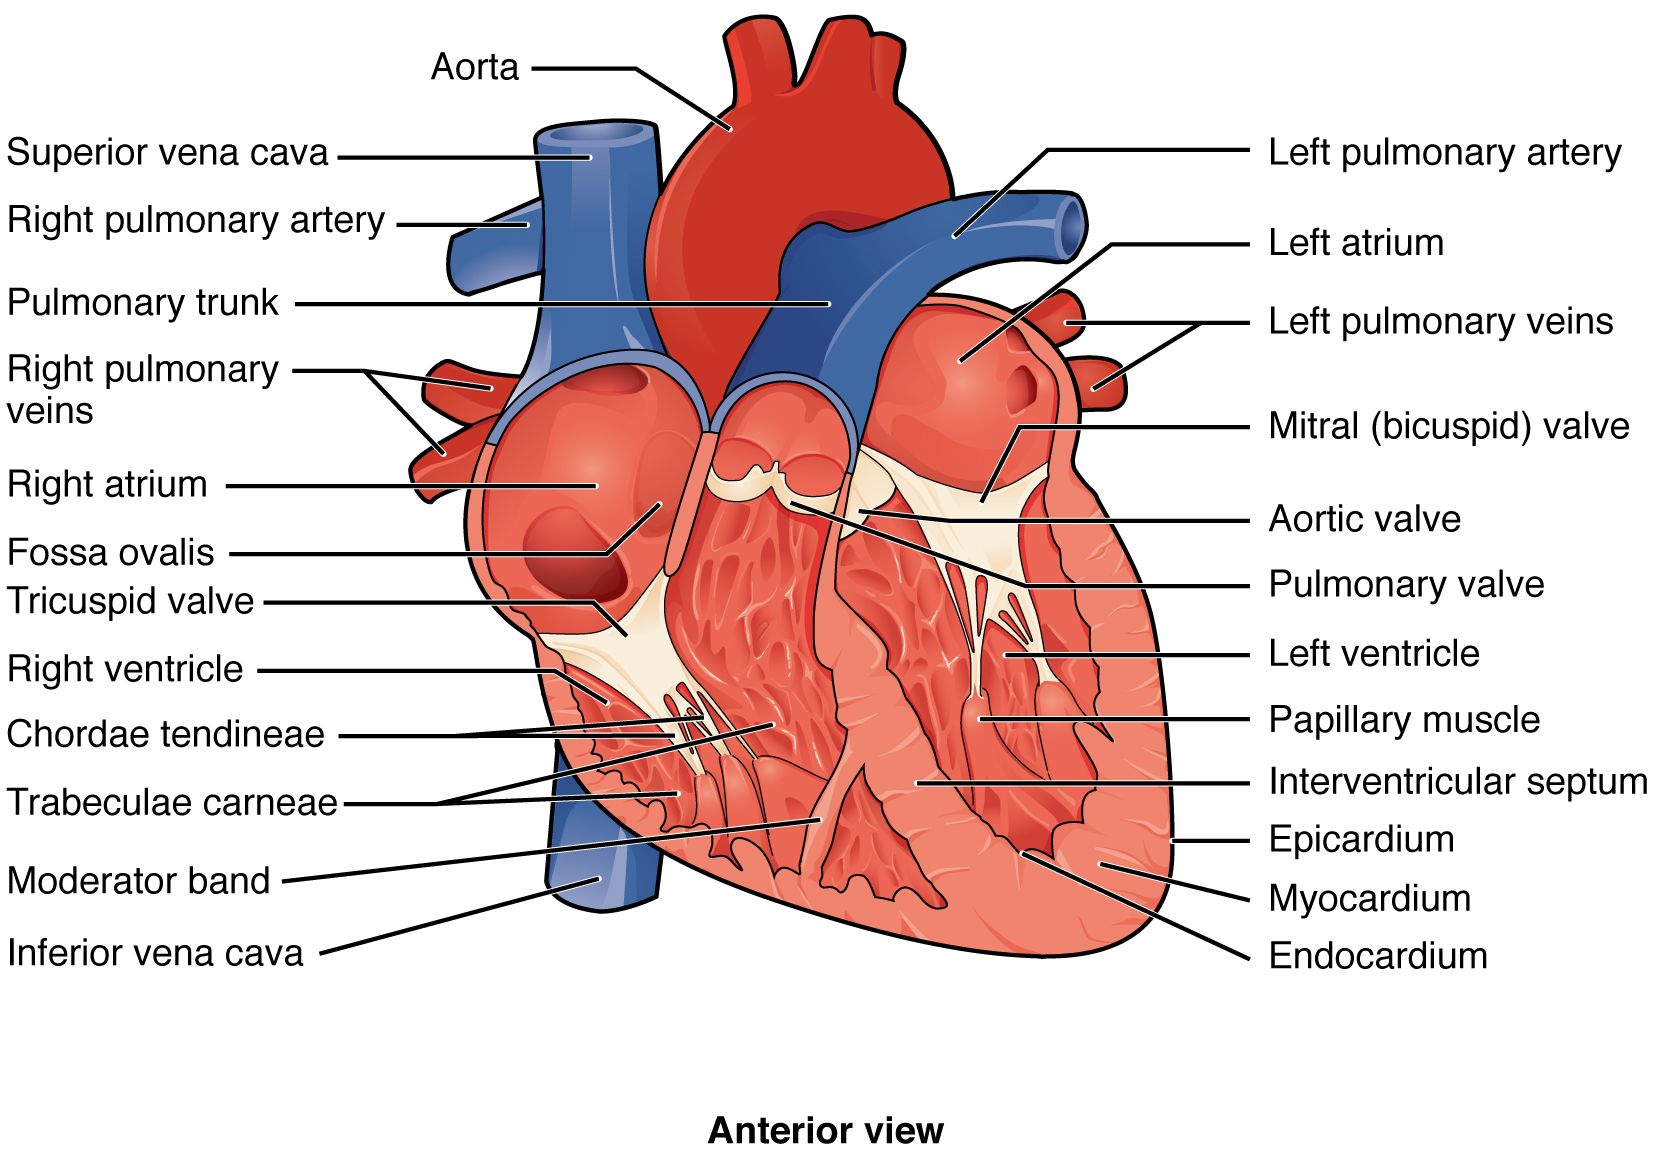 Label Heart Anatomy Heart Anatomy Diagram Label Interior Diagr On Diagram Of The Human Organs With Labels Heart Ana Cardiac Anatomy Heart Anatomy Heart Diagram